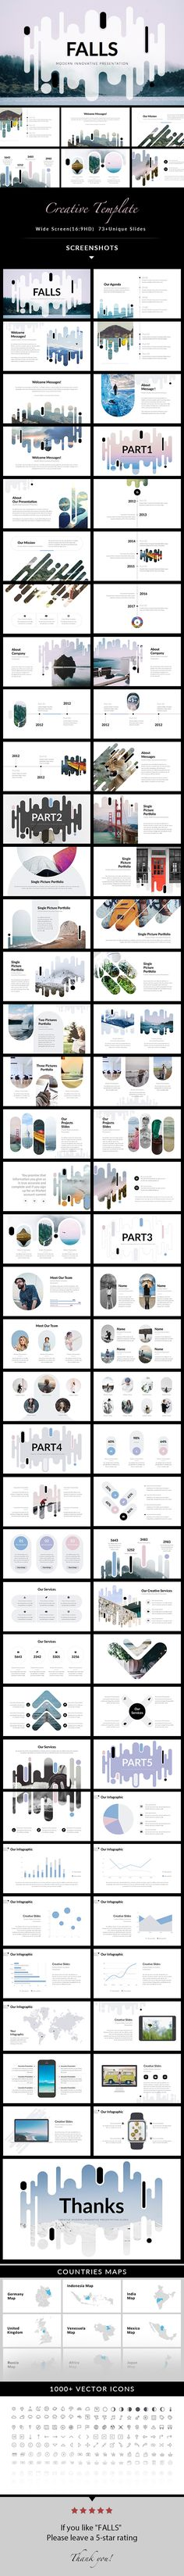 Falls  Creative PowerPoint Template — Powerpoint PPT #clean • Download ➝ https://graphicriver.net/item/falls-creative-powerpoint-template/20285370?ref=pxcr